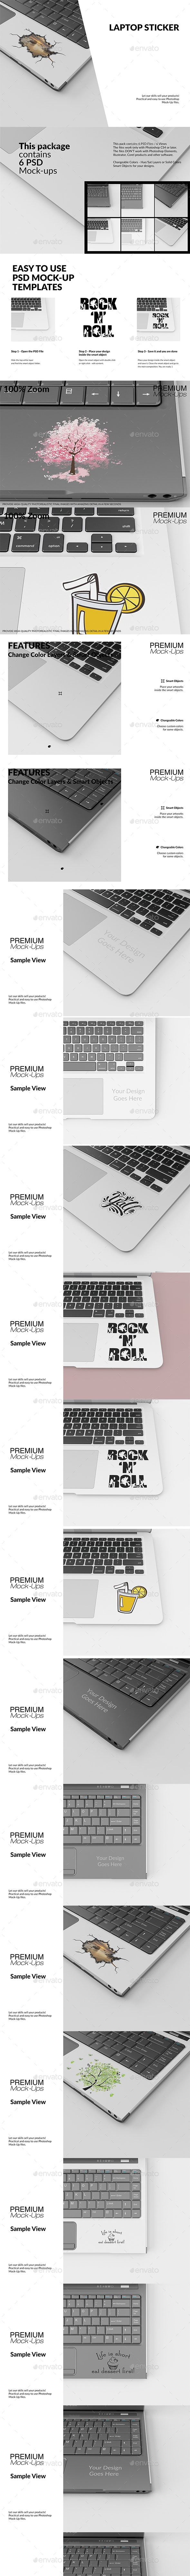 Laptop Sticker Mockup Set - Print Product Mock-Ups